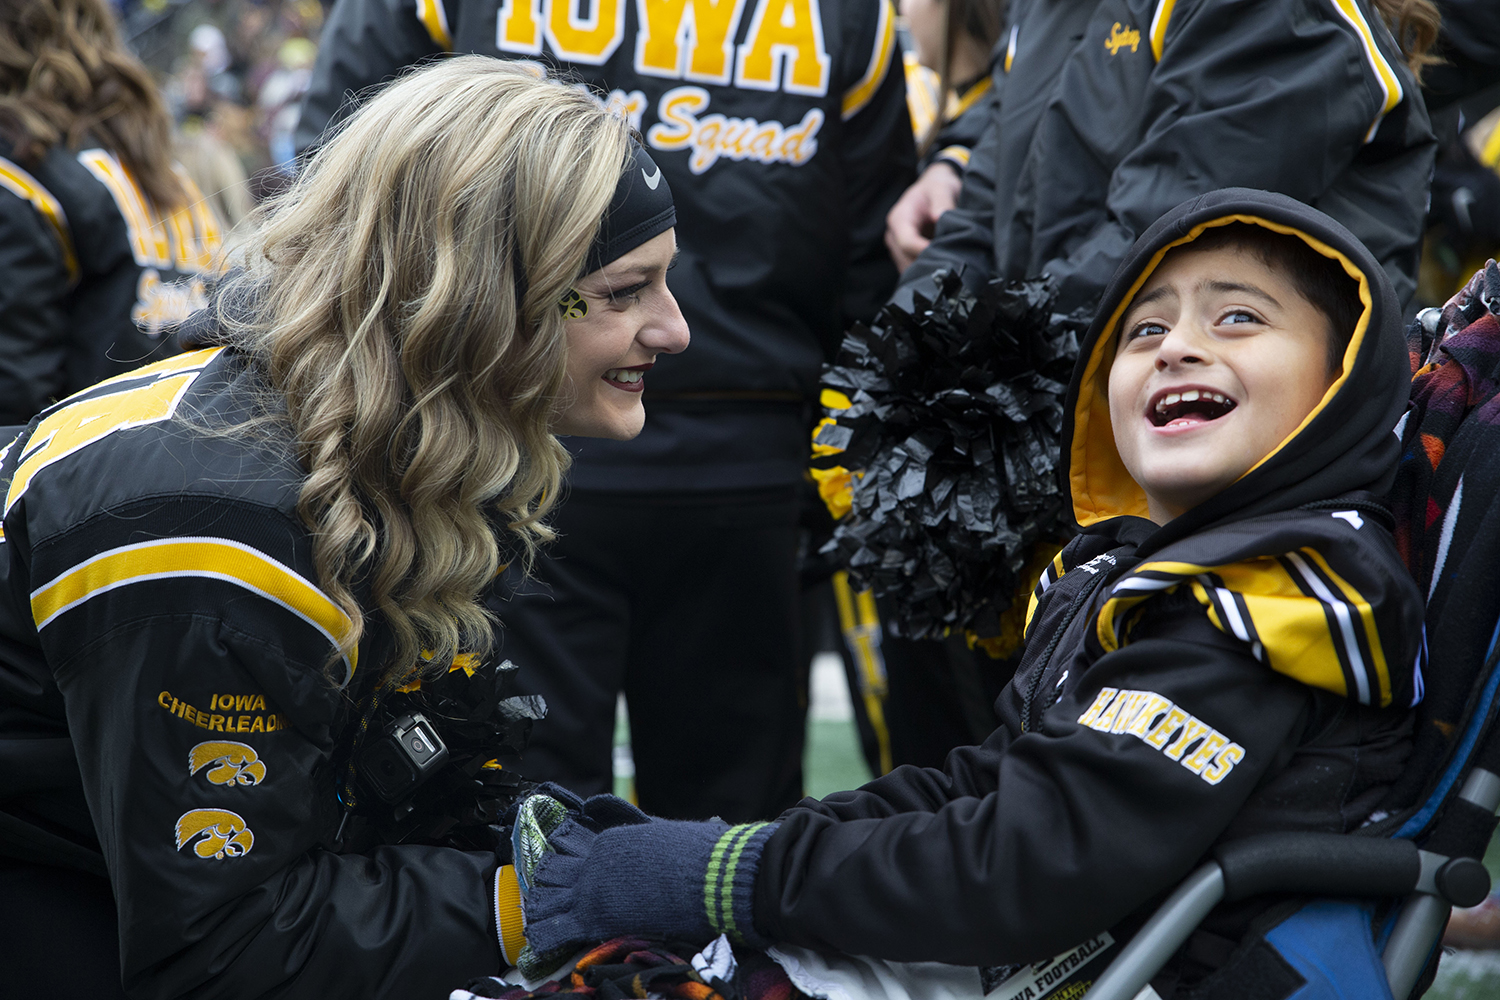 Kid+Captain+Mason+Gonzalez+smiles+before+the+Iowa%2FNorthwestern+game+at+Kinnick+Stadium+on+Saturday%2C+November+10%2C+2018.+The+Wildcats+defeated+the+Hawkeyes+14-10.+%28Katina+Zentz%2FThe+Daily+Iowan%29